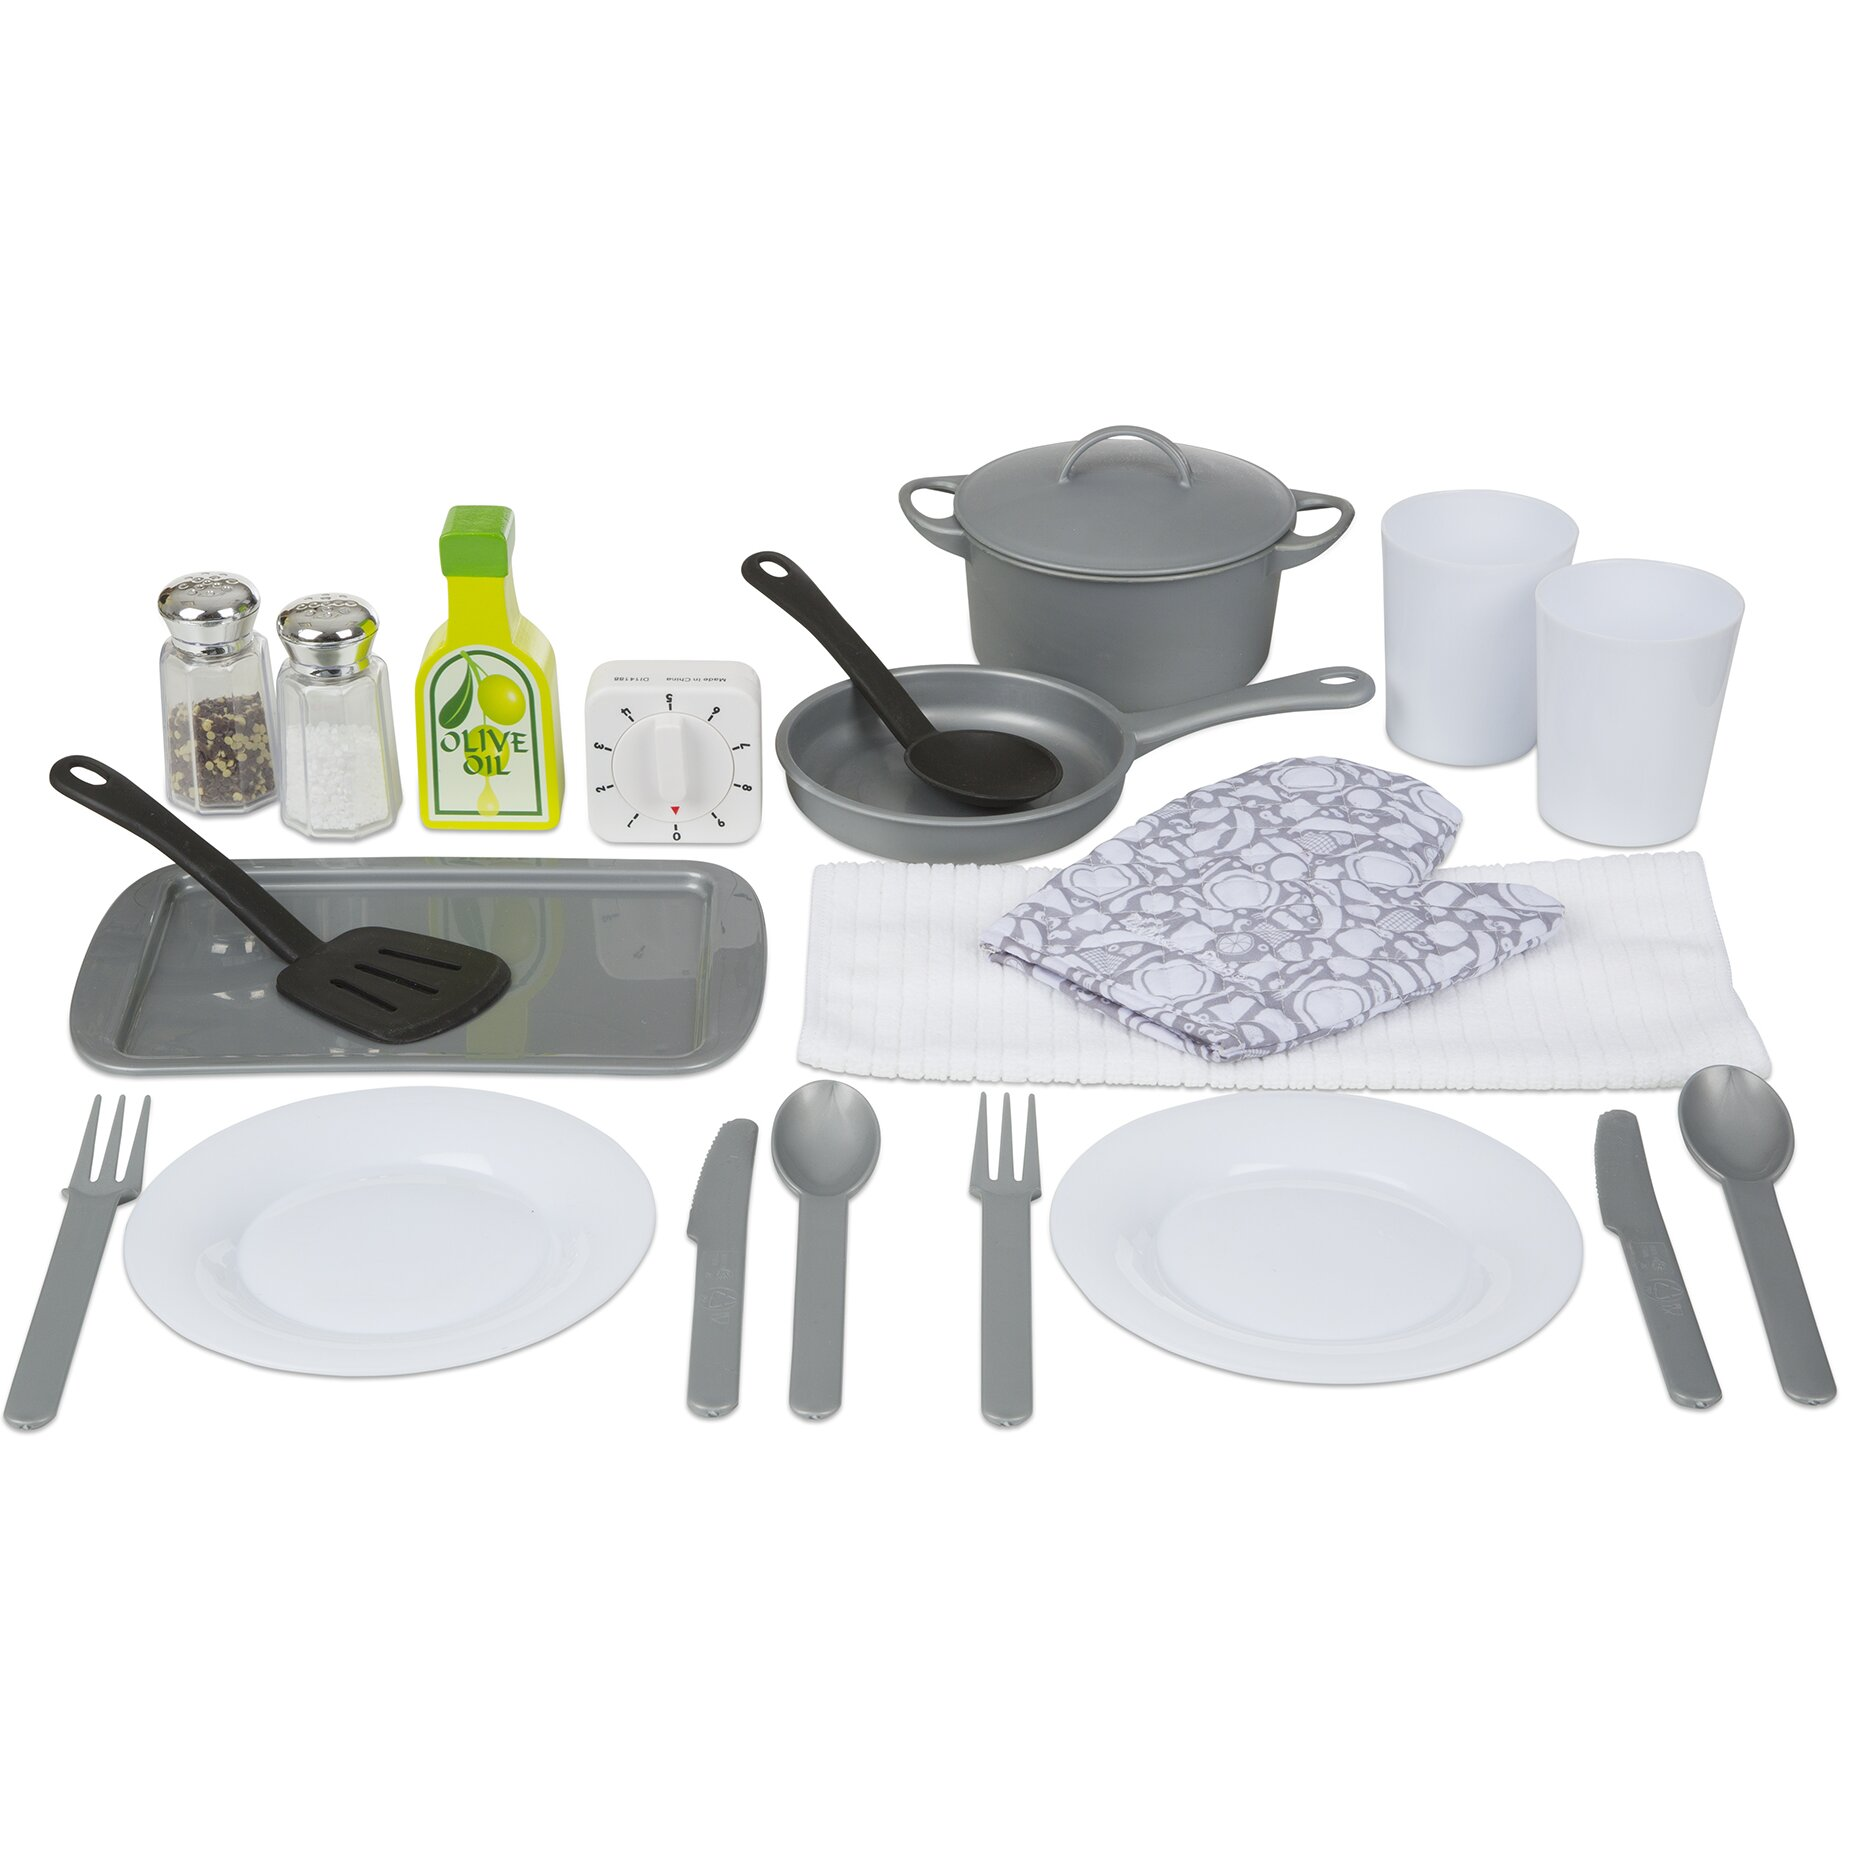 Kitchen Accessory Melissa Doug 20 Piece Kitchen Accessory Set Reviews Wayfair